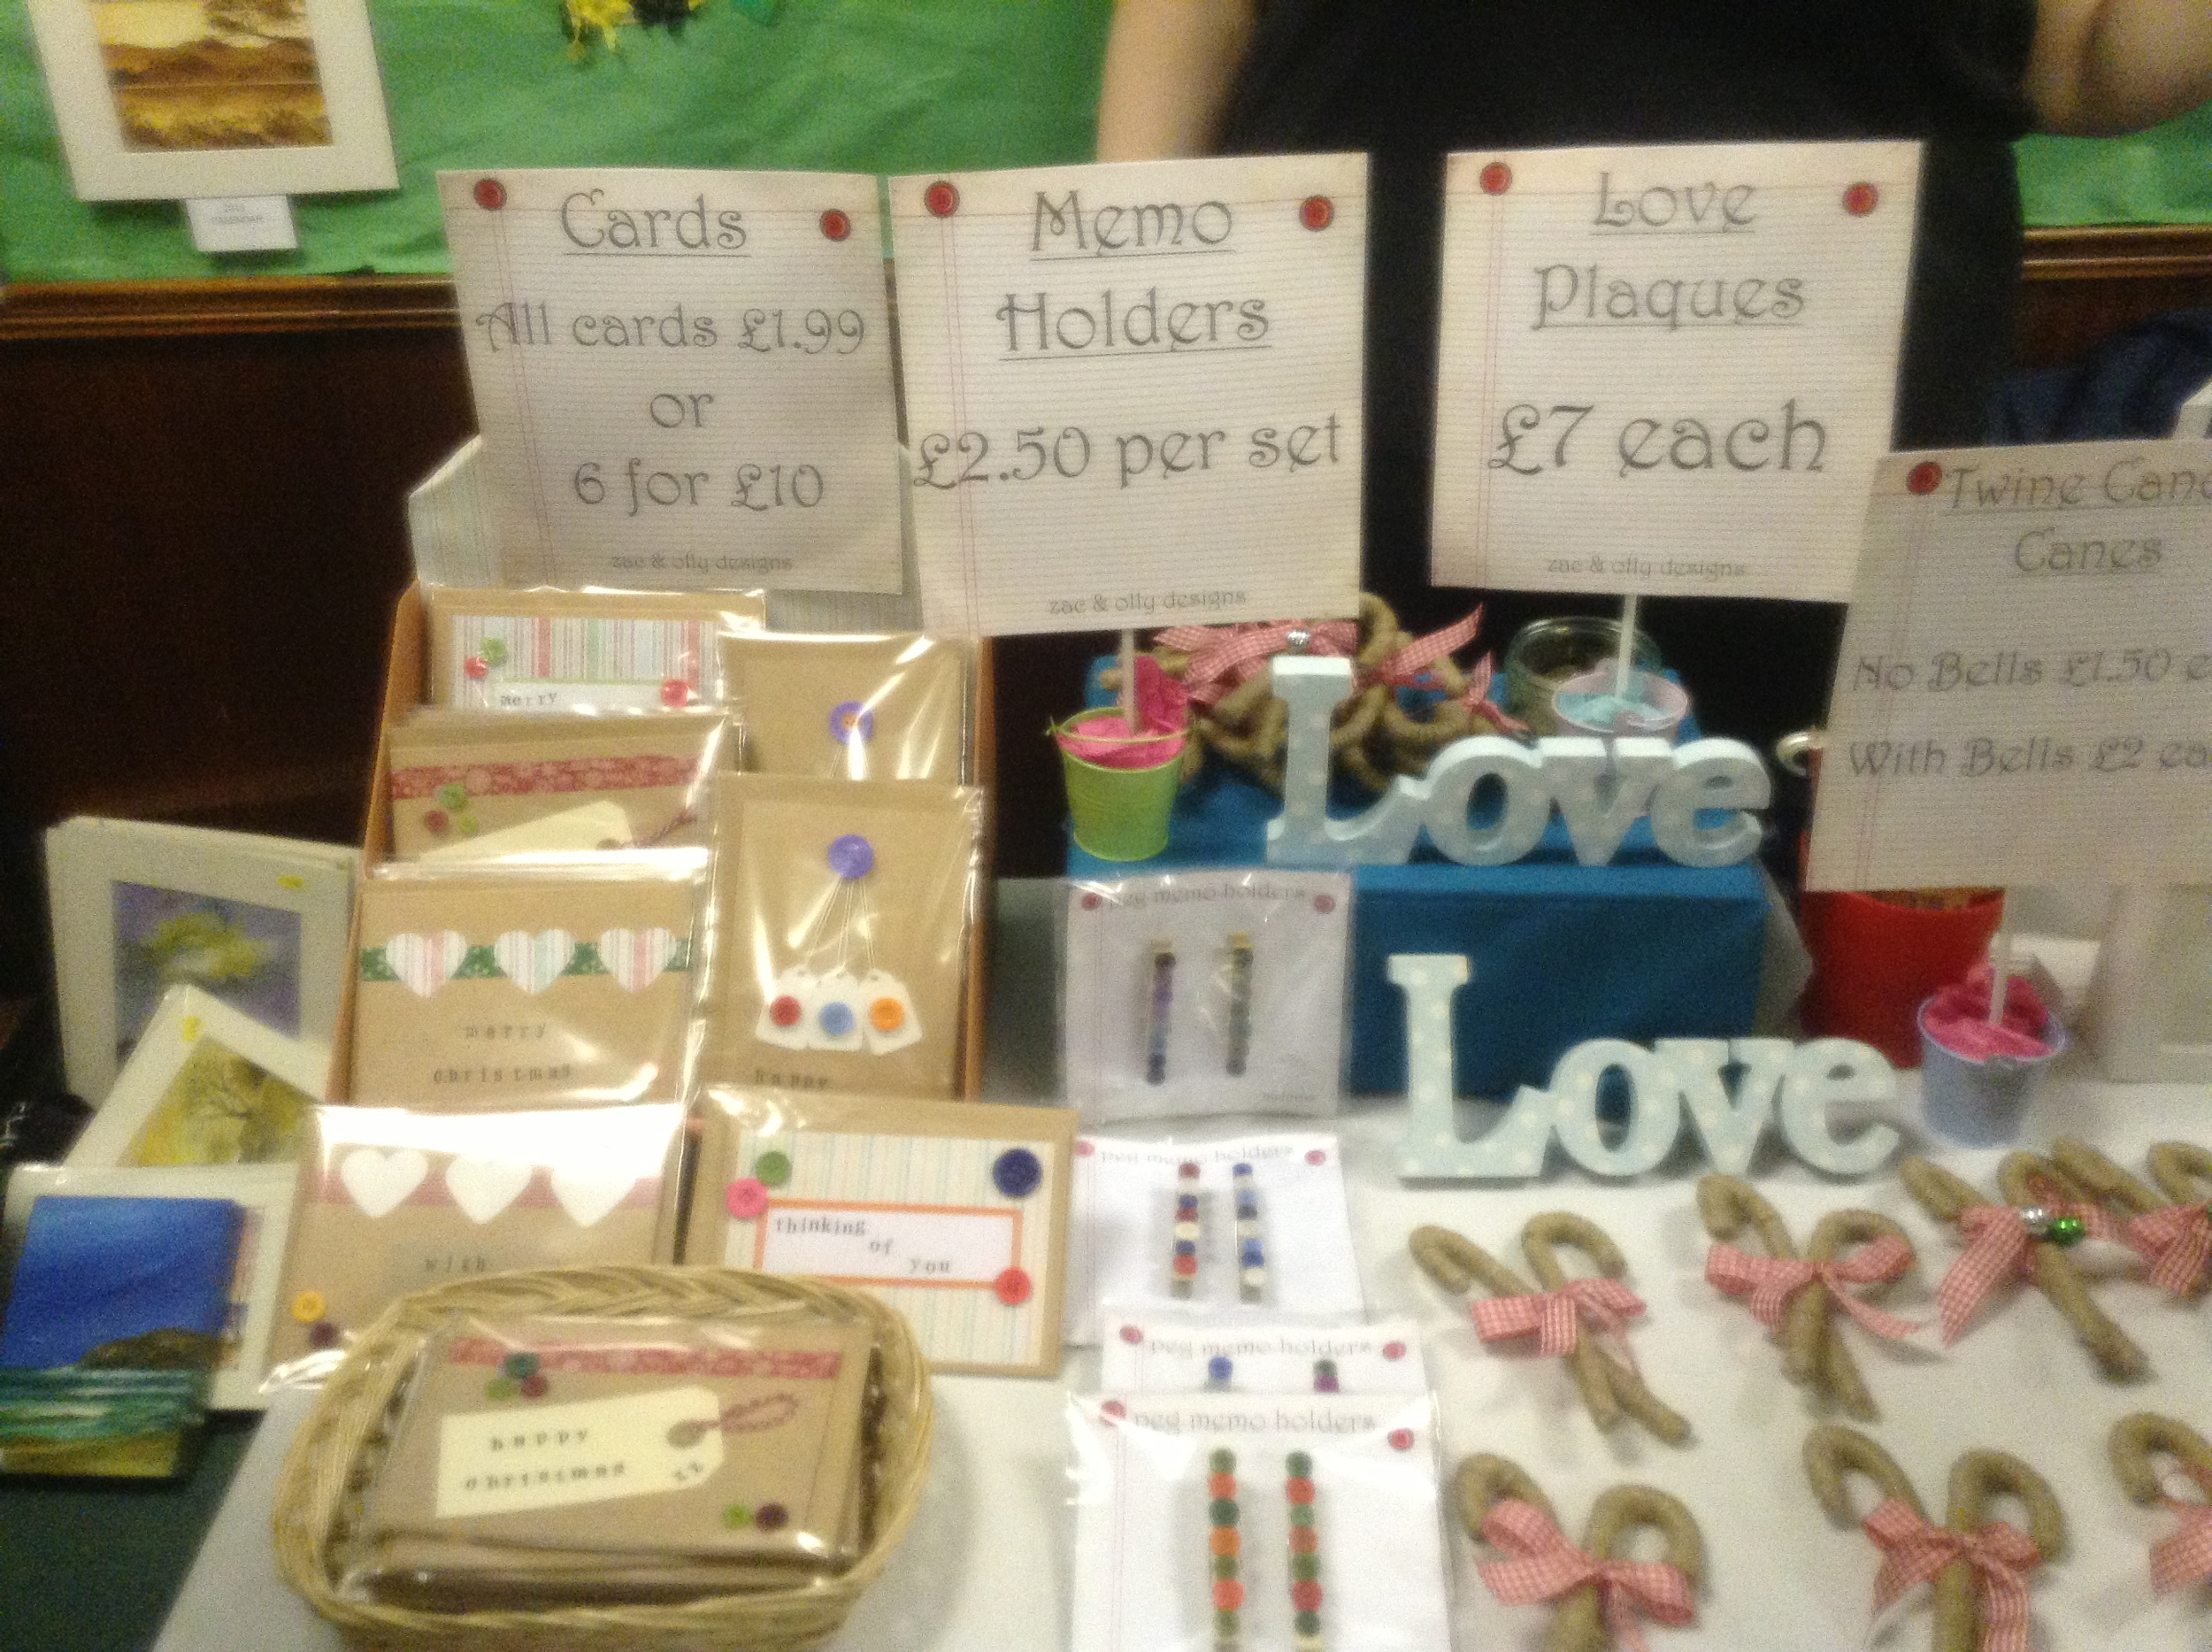 One of our cards and crafts stalls.